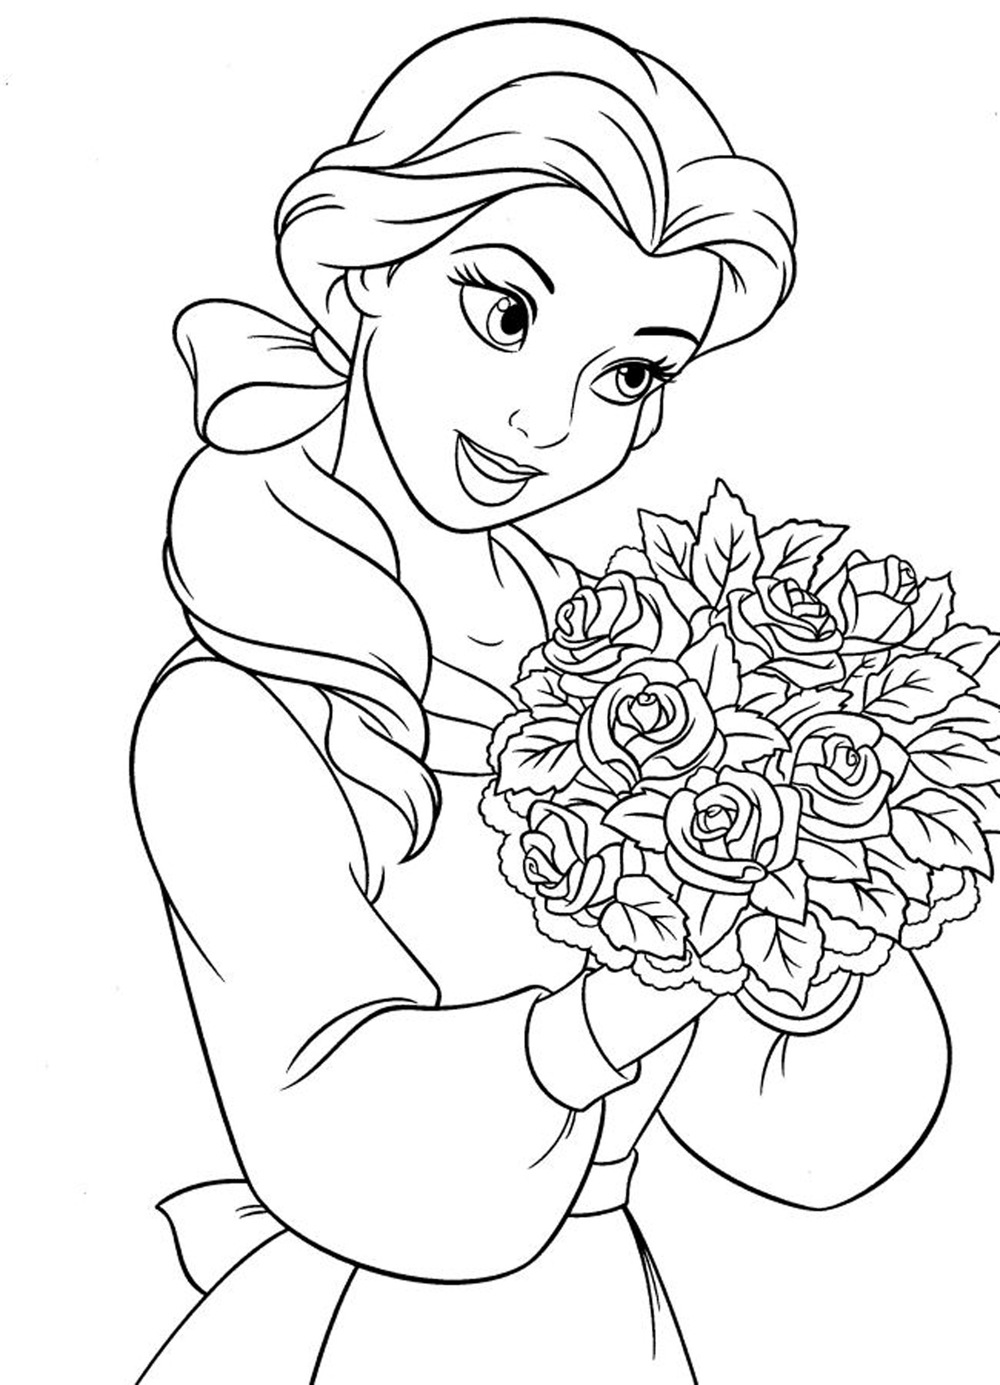 4 Images of Printable Disney Coloring Pages